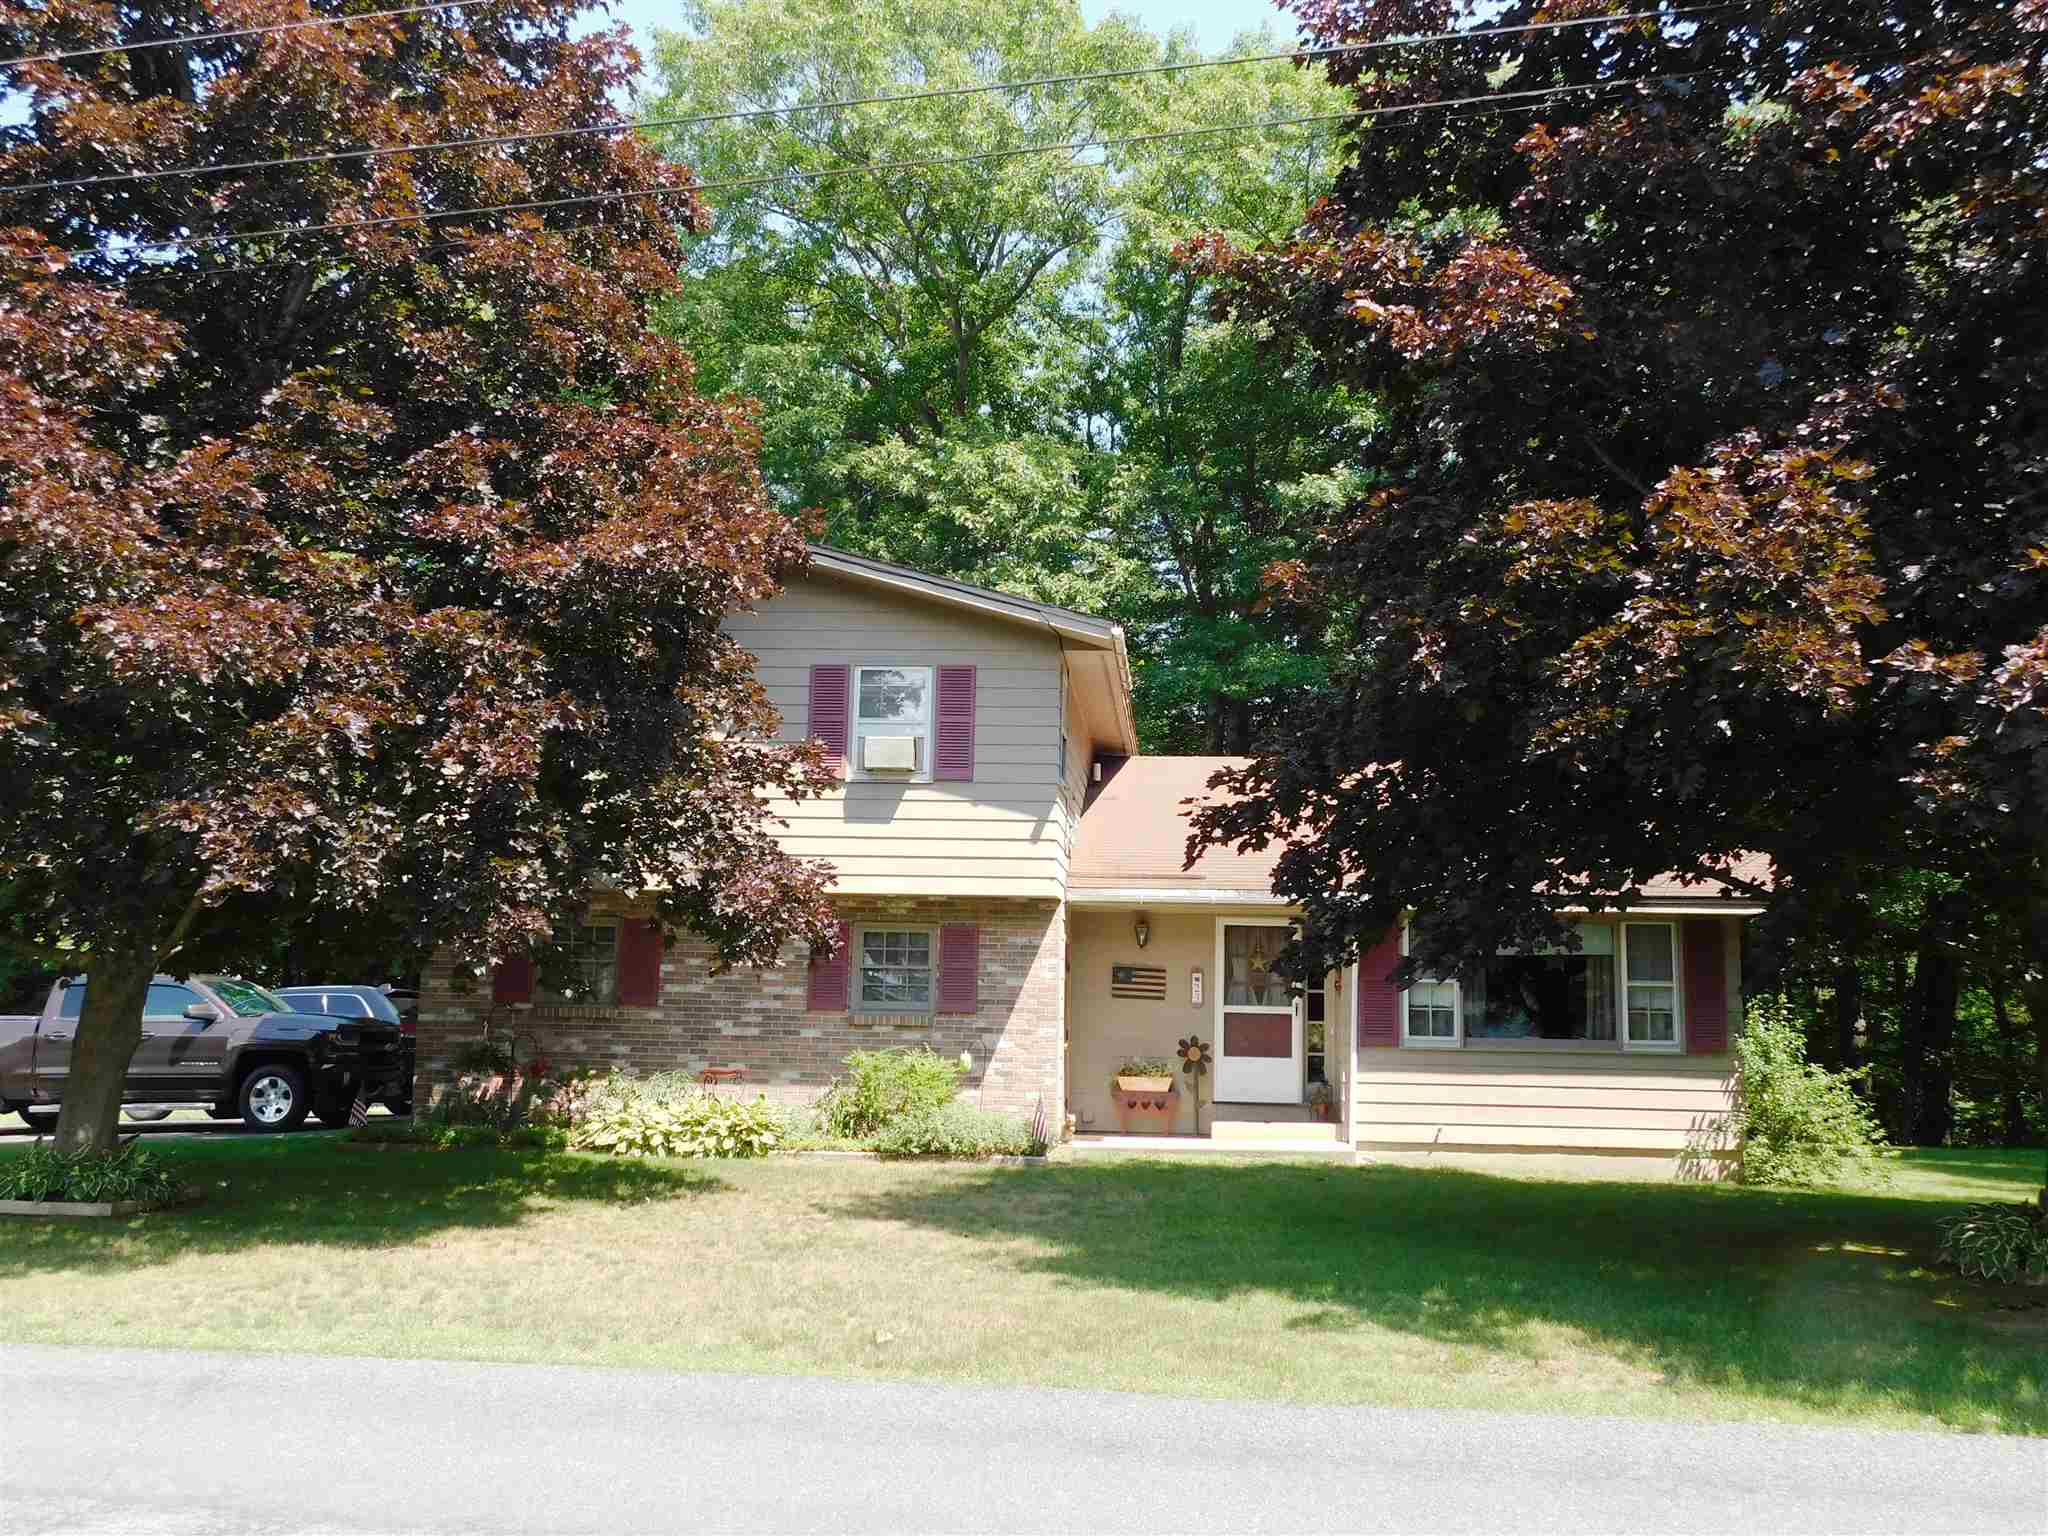 image of Springfield VT Home | sq.ft. 2808